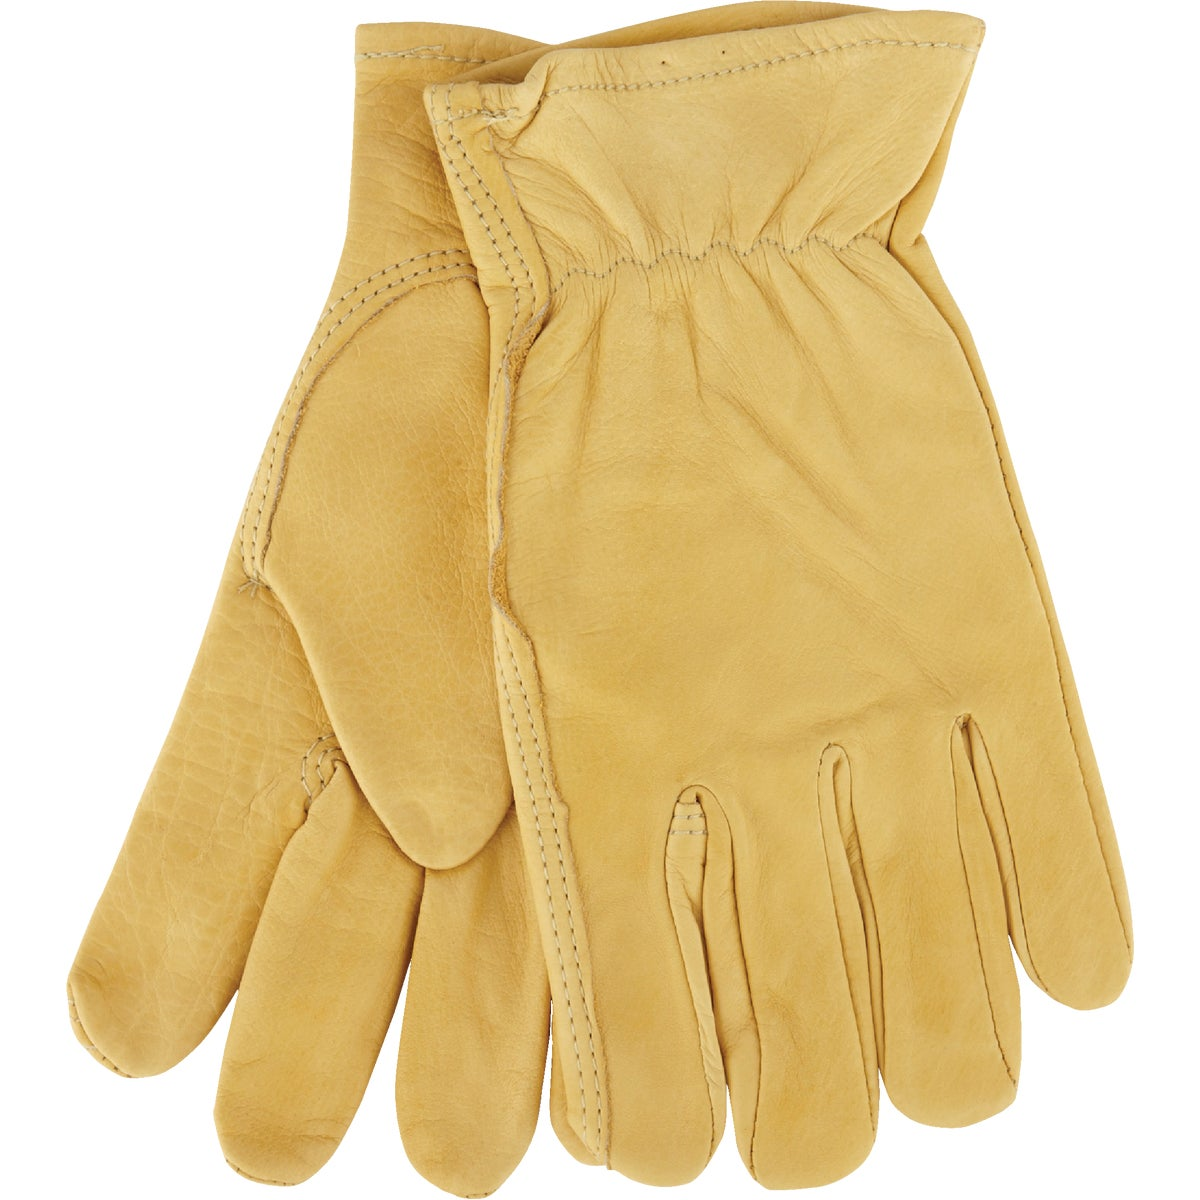 XL LEATHER GLOVE - 746795 by Do it Best